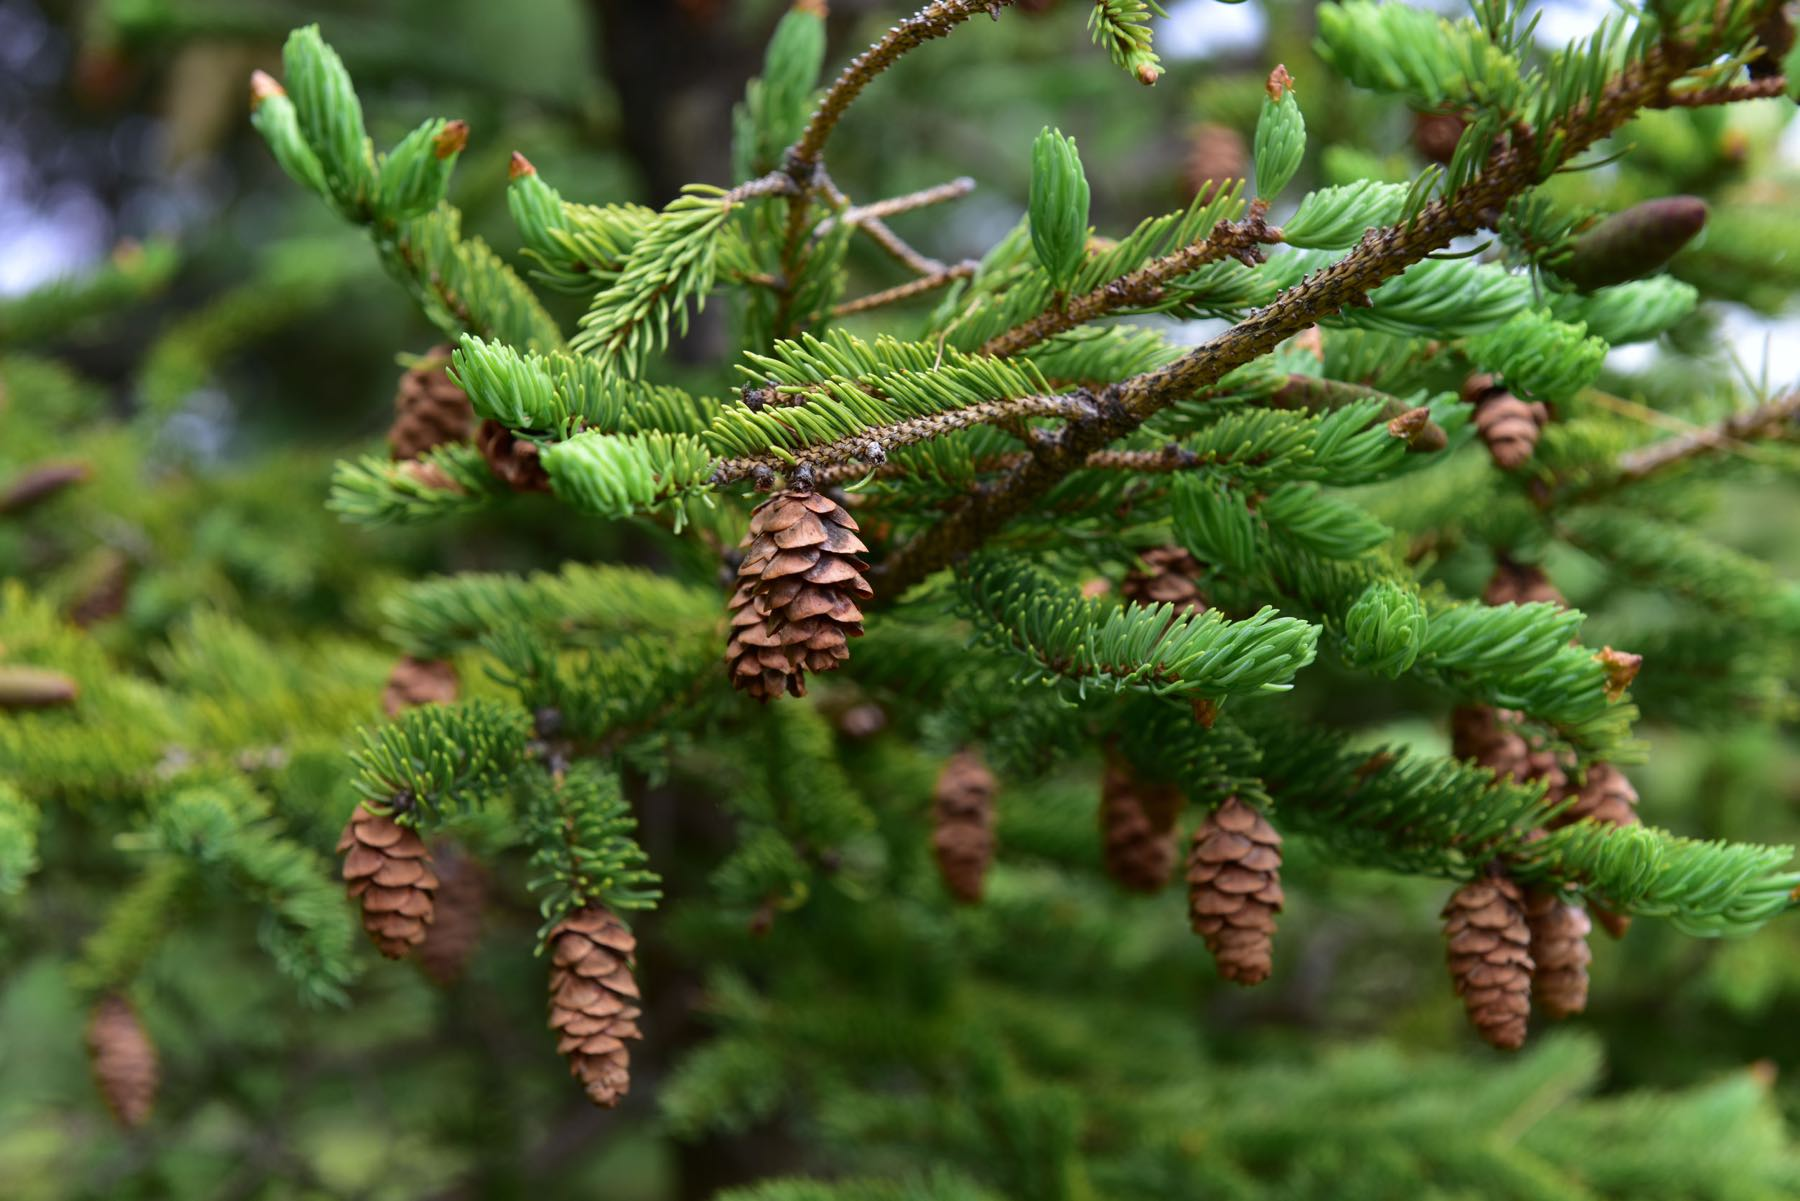 Pine cone on pine tree in the forest